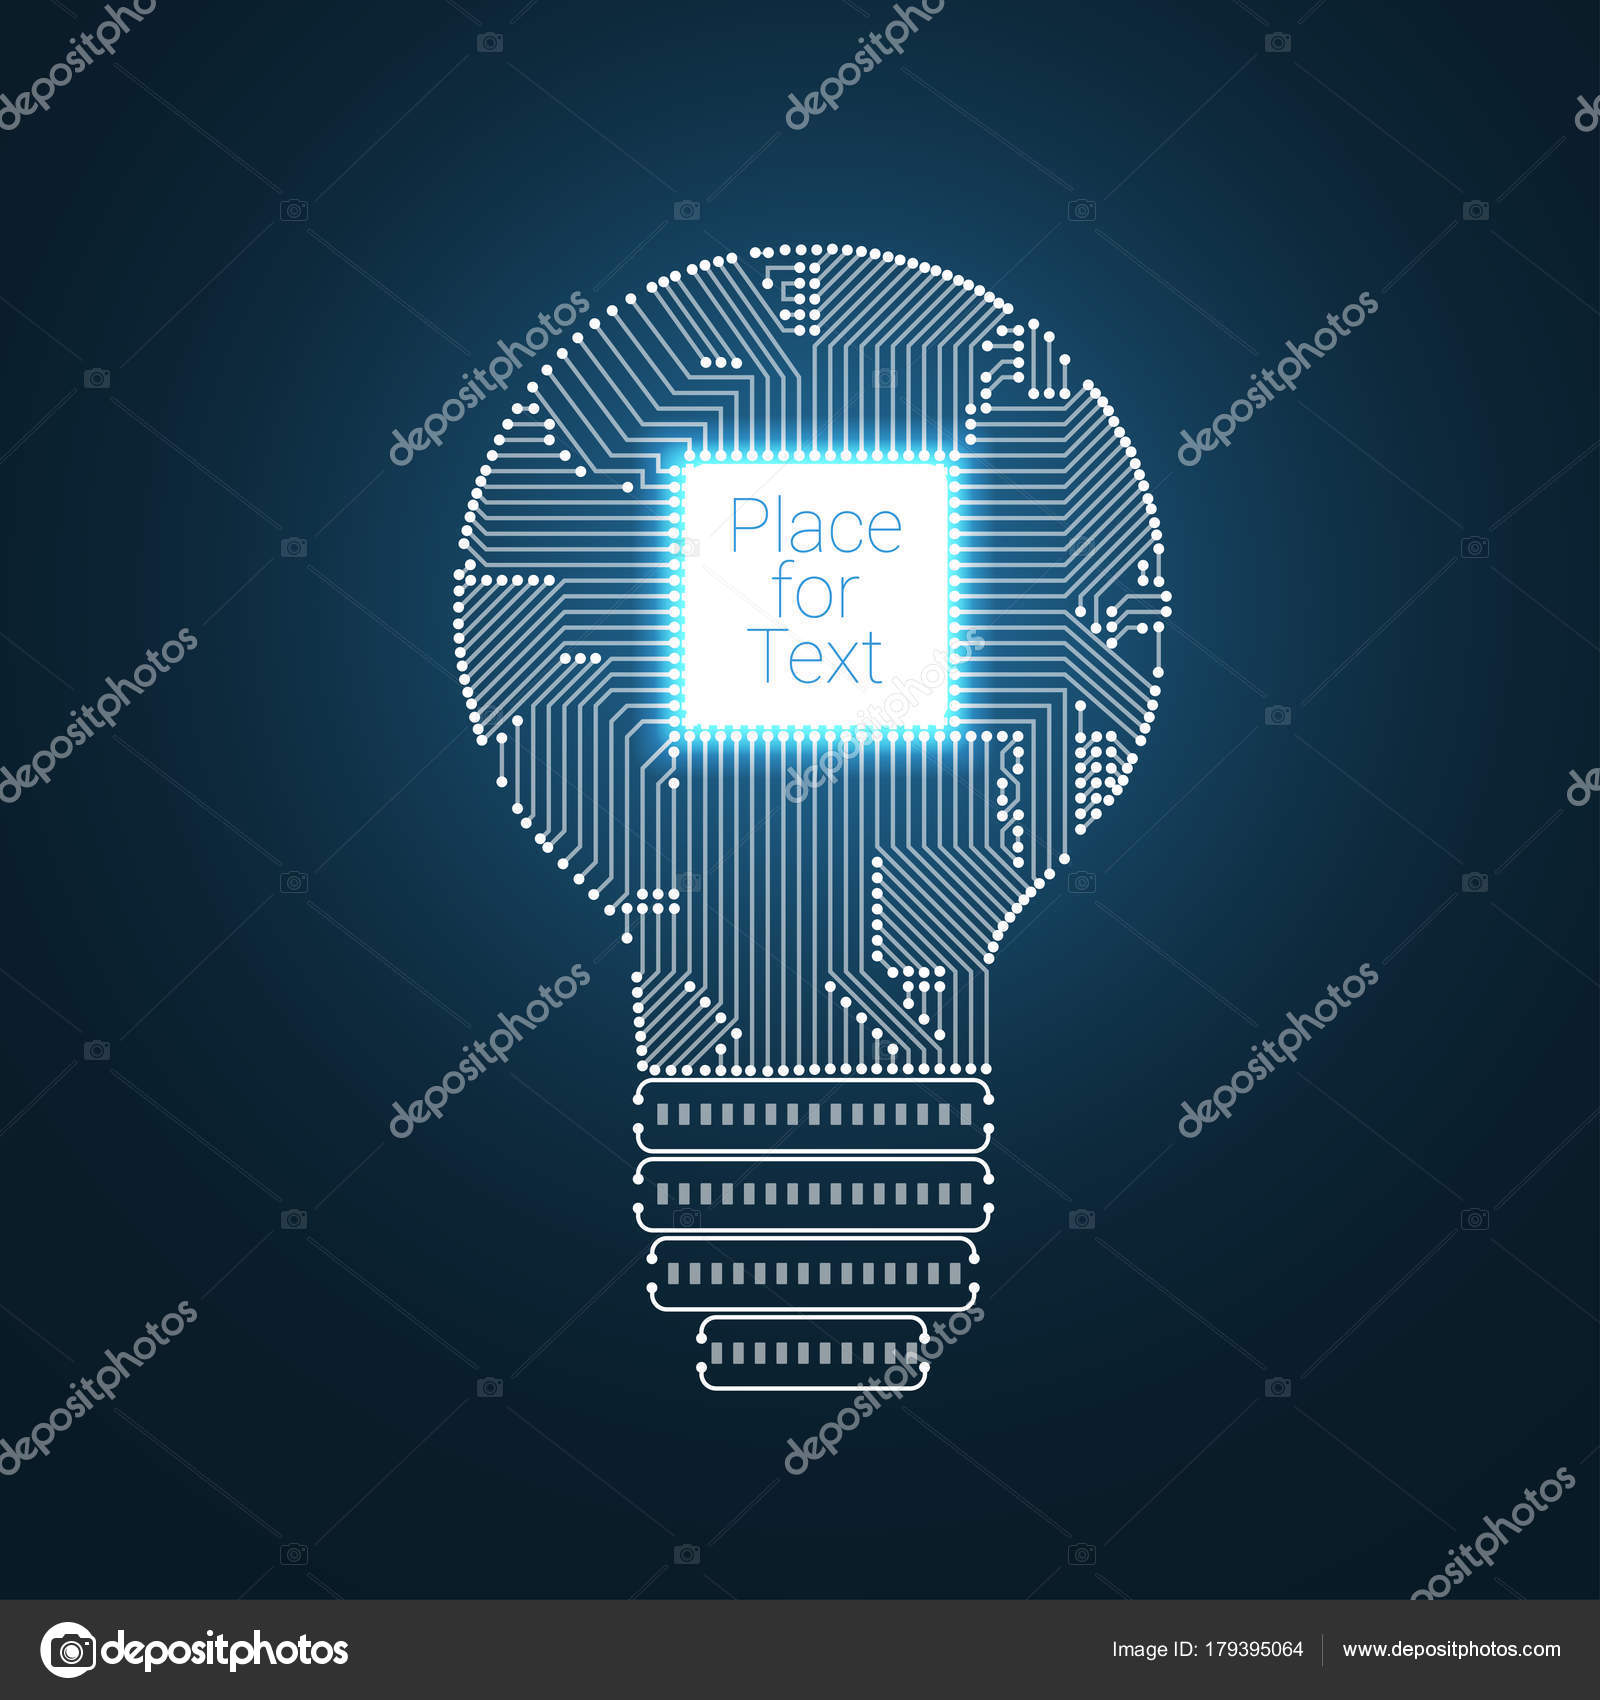 hight resolution of light bulb idea icon with circuit board inside stock vector